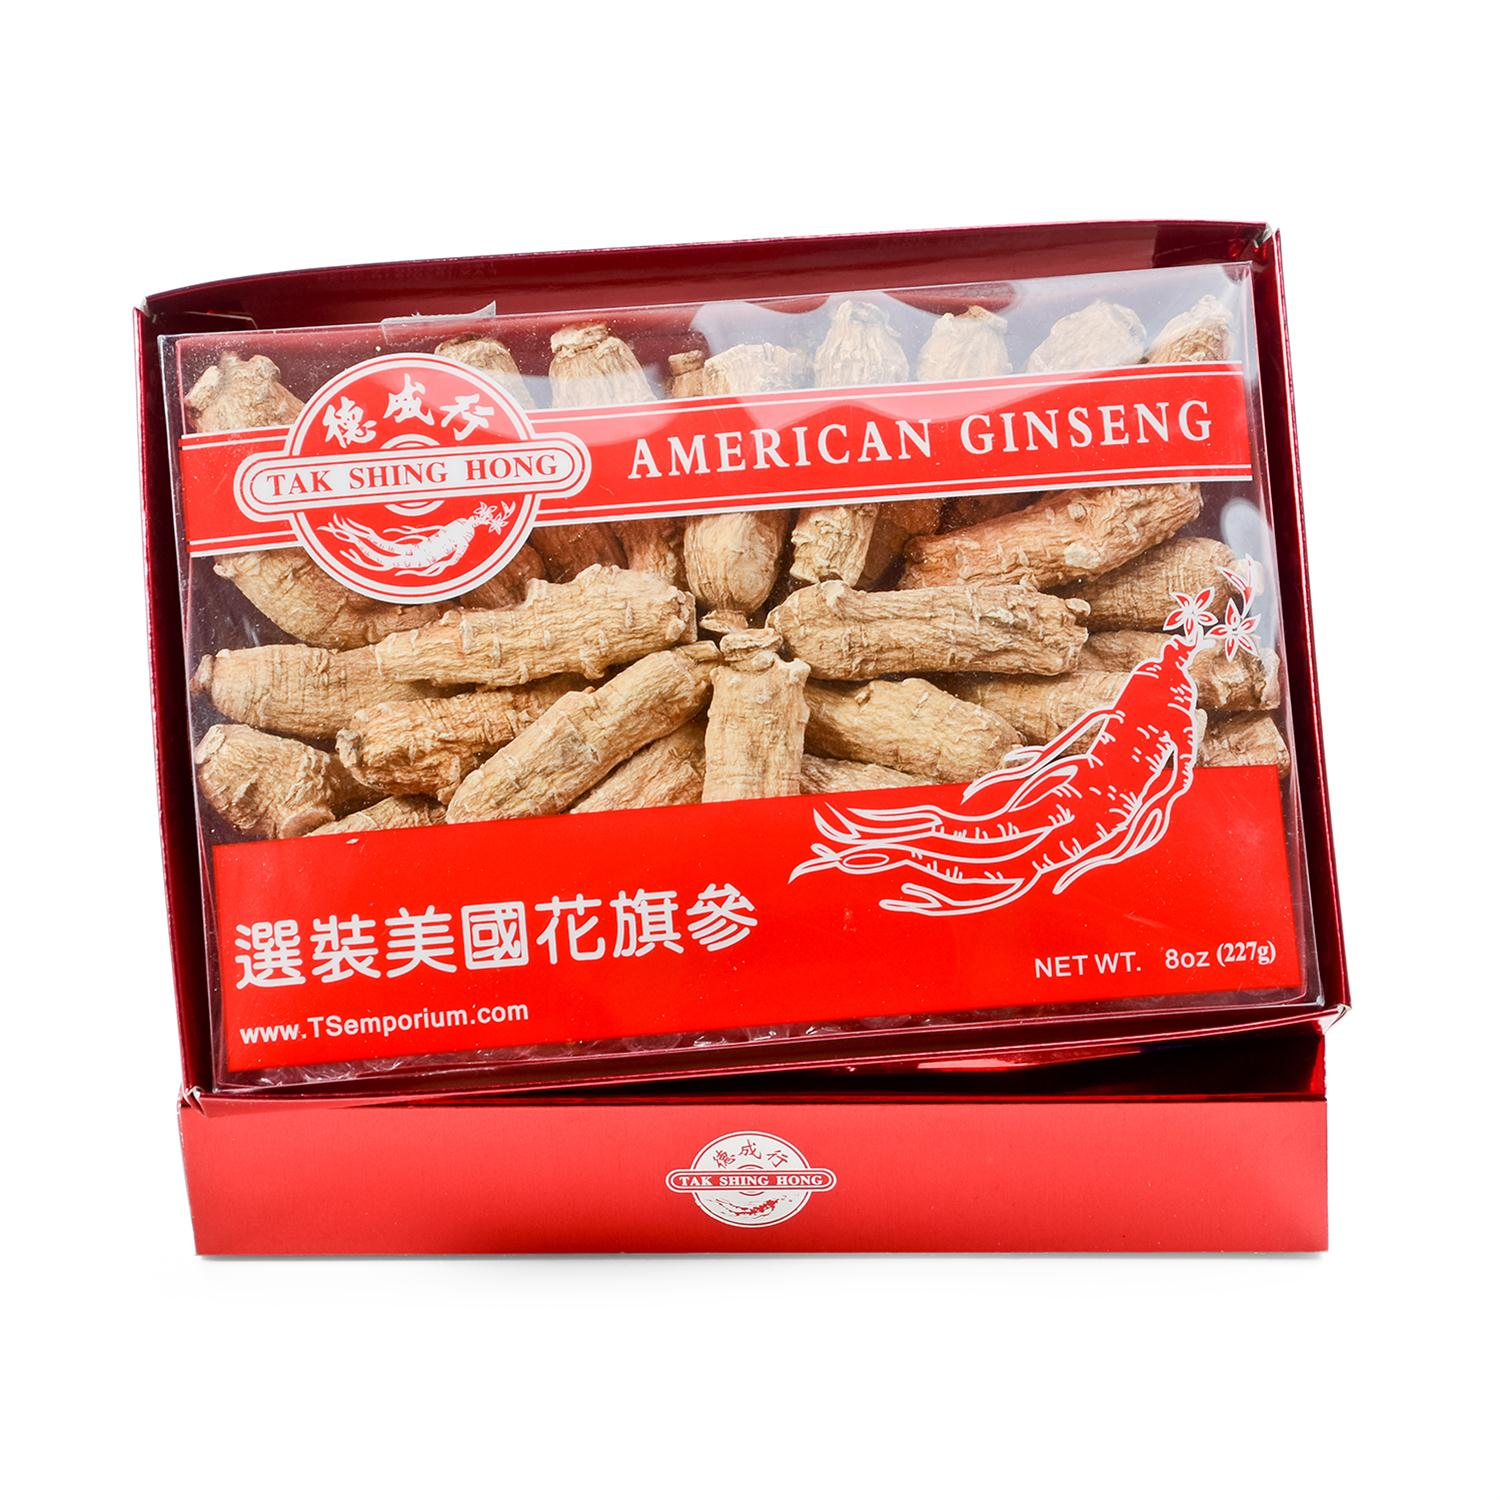 50% Off for 2 Box + Instant $30 Off American Ginseng PTS 80-AAA 8oz